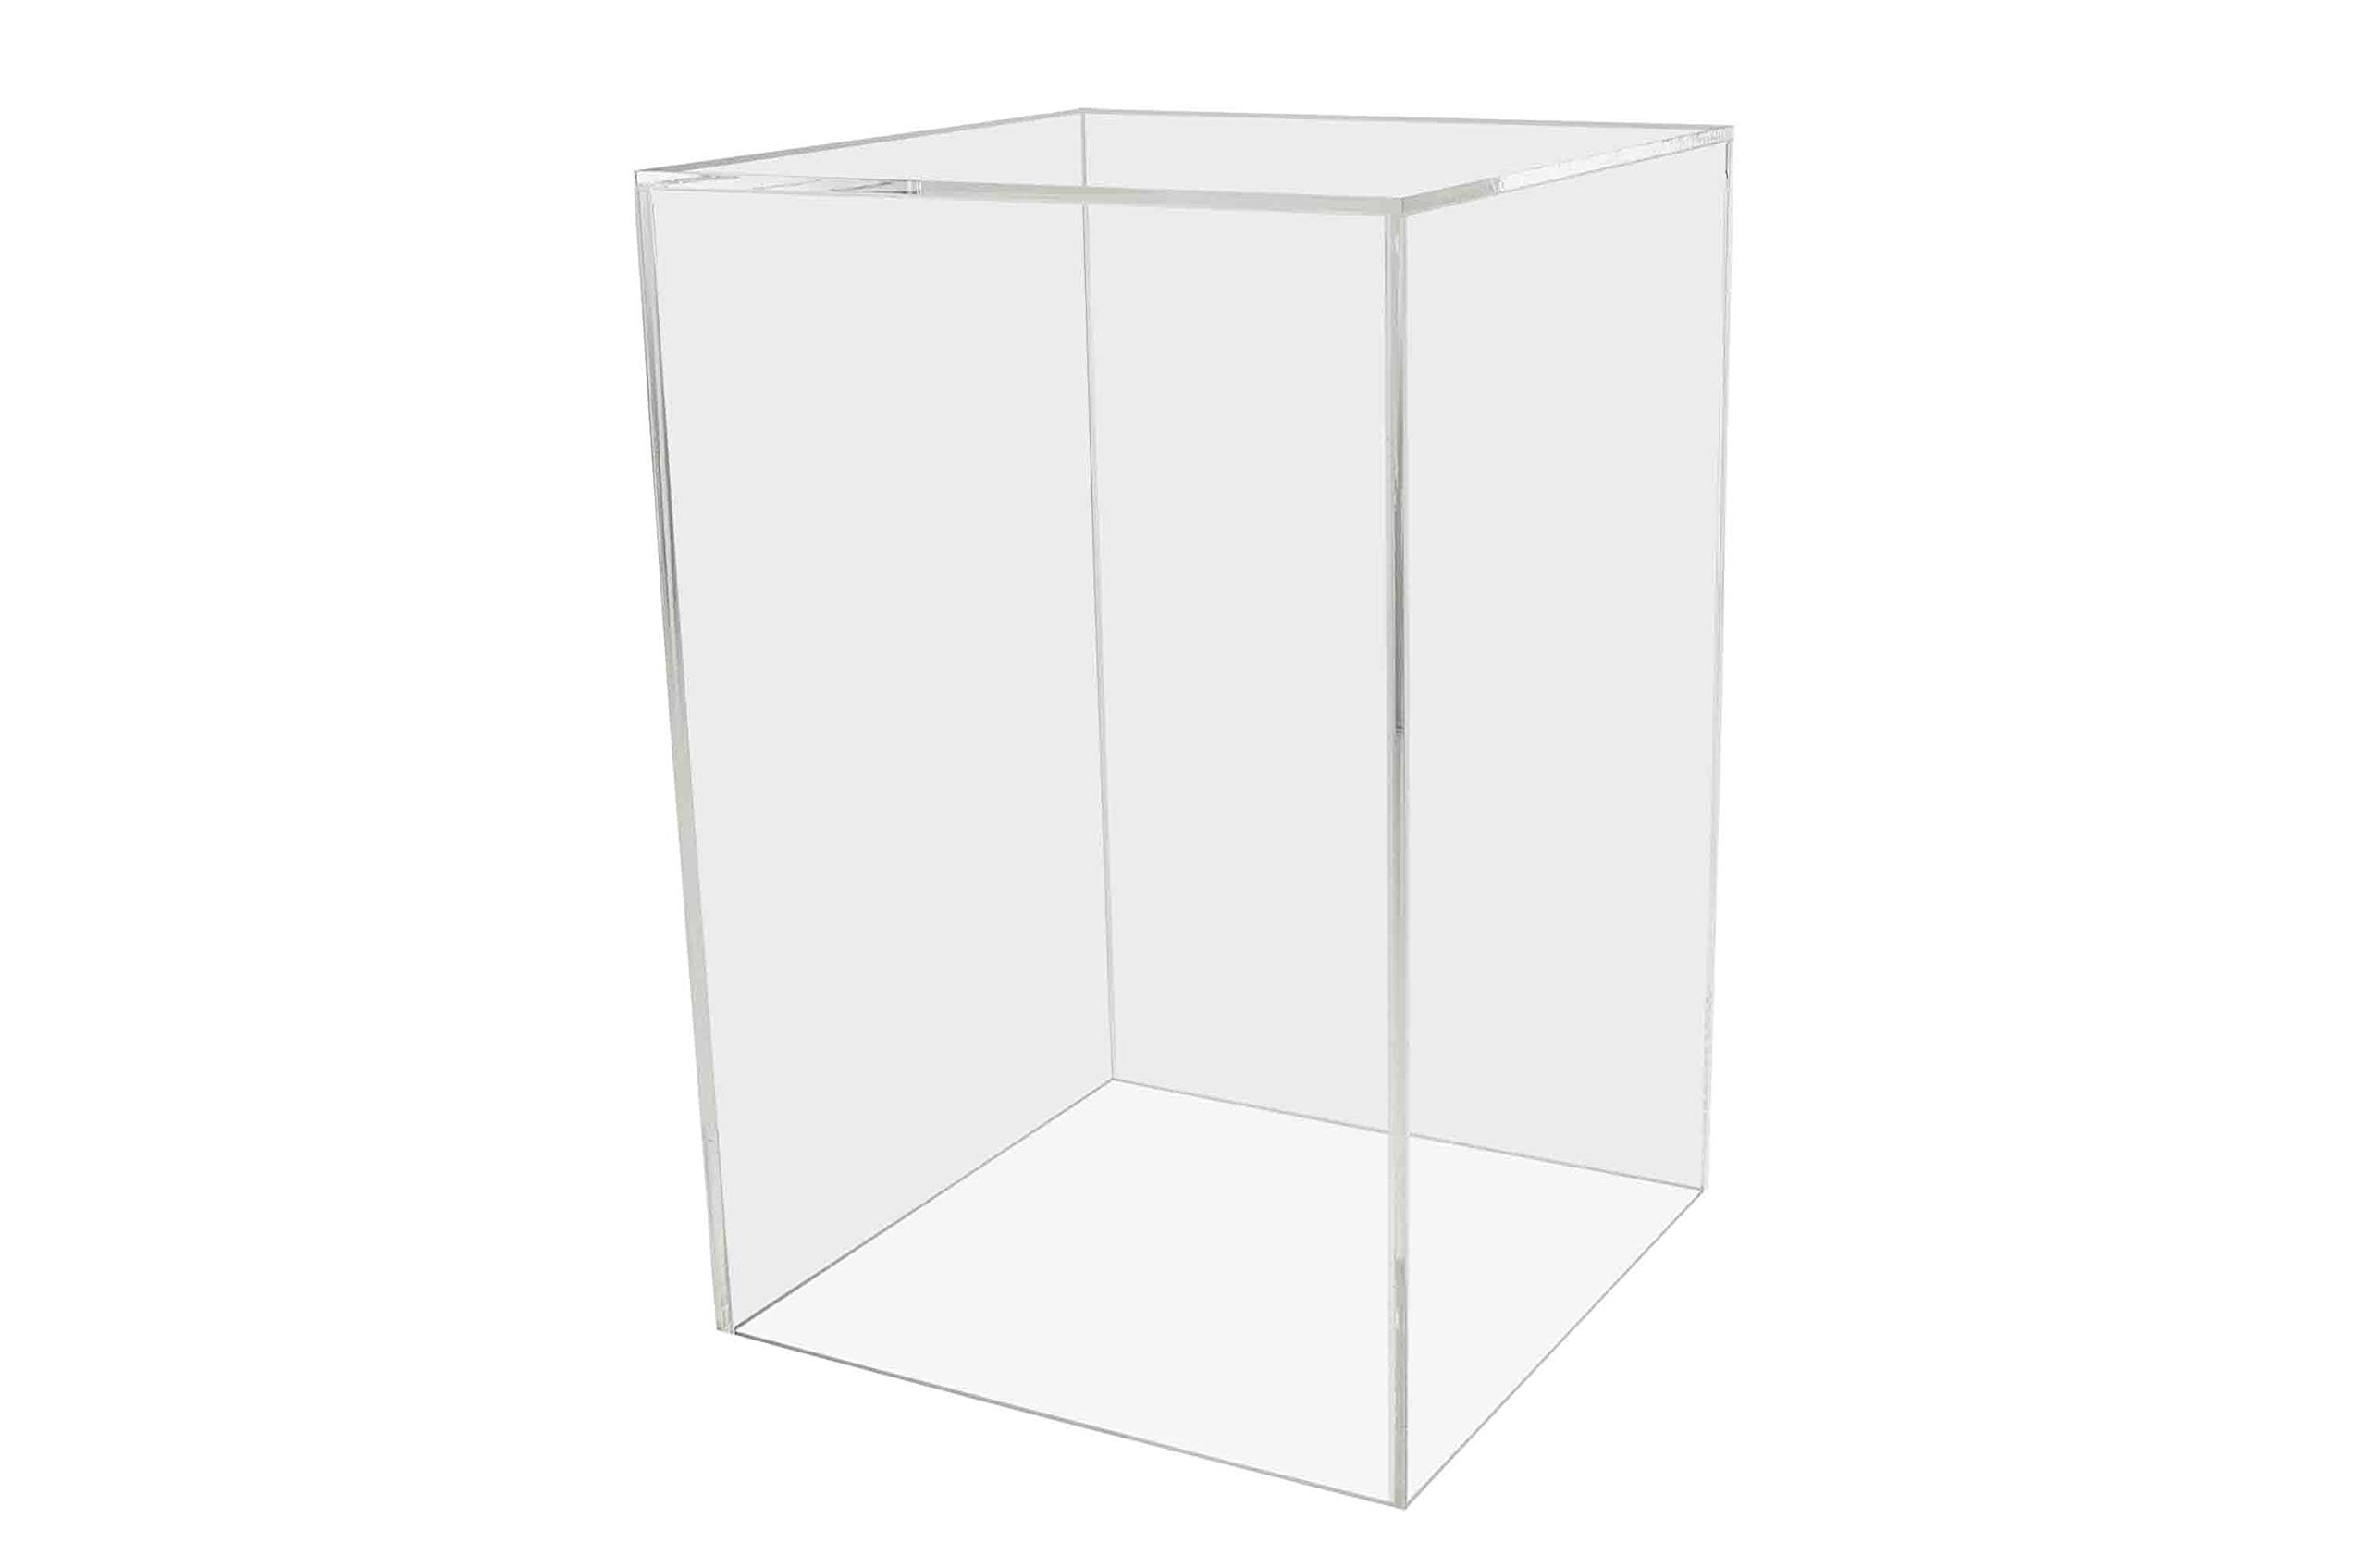 Marketing Holders Pedestal Display Box 8''w x 8''d x 12''h Showcase Cube Display Collectible Cover Trinkets Trophy Display 5 Sided Square Activity Cube